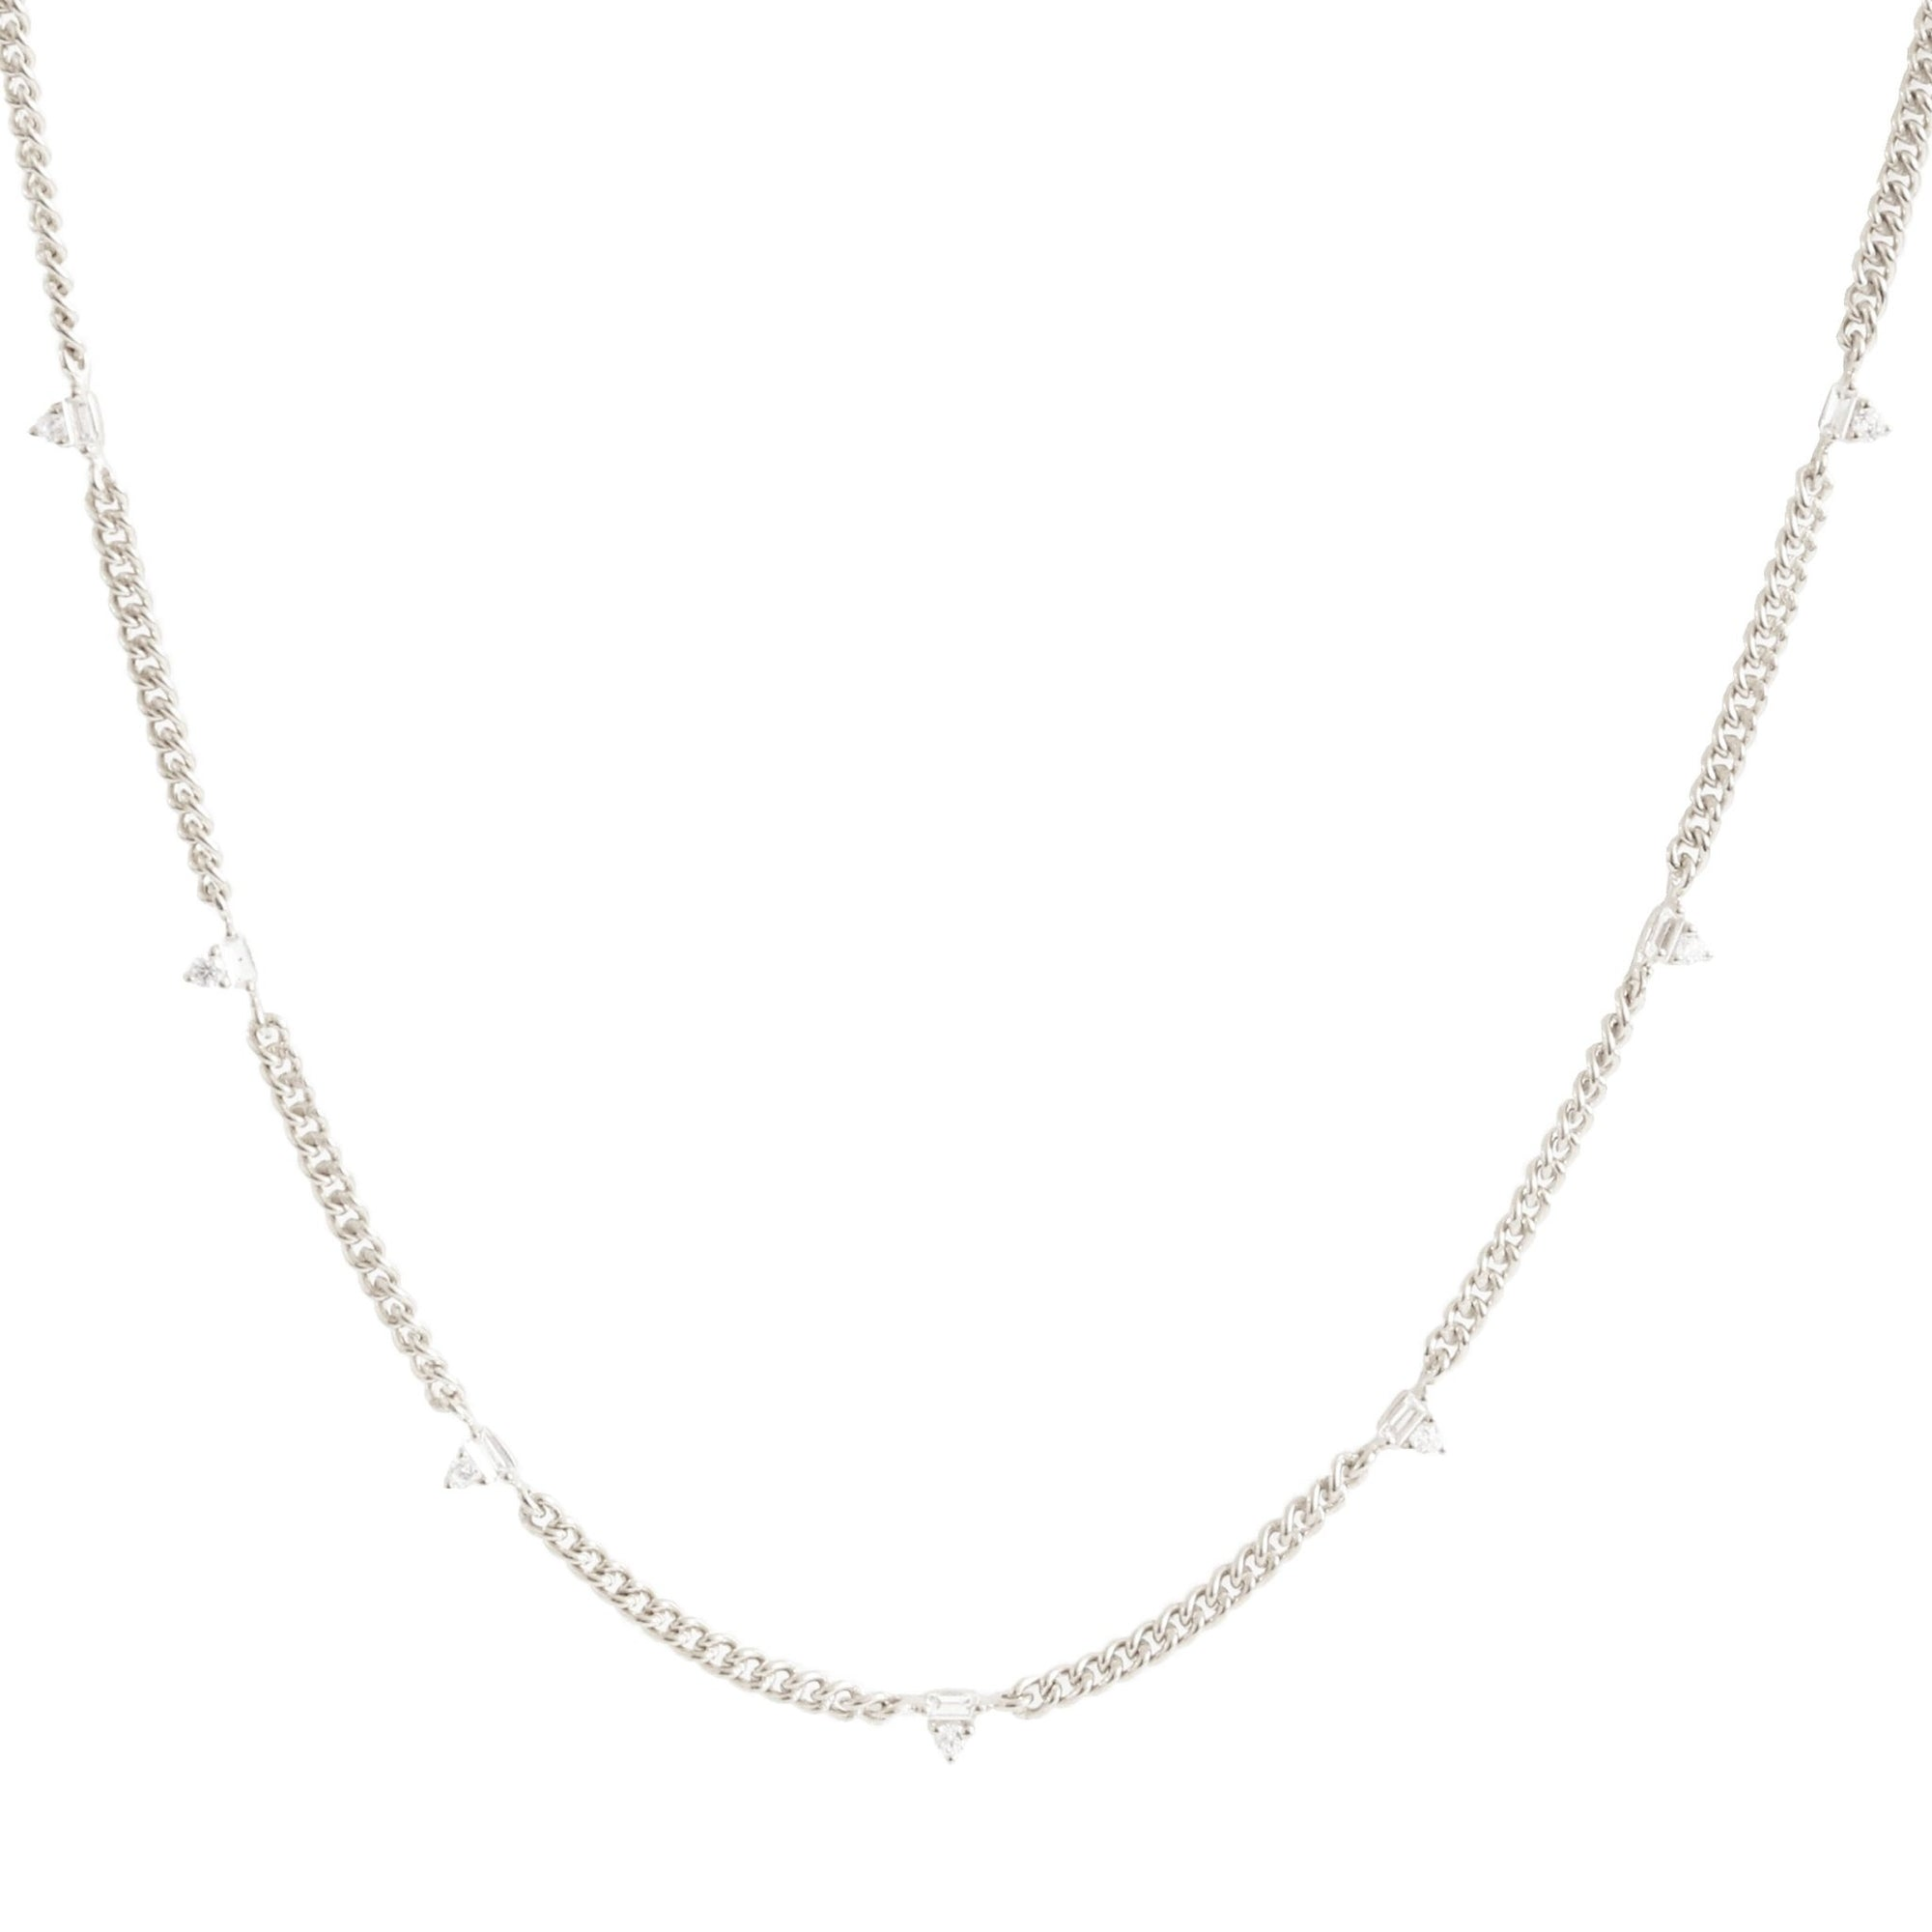 Loyal Prism Curb Link Necklace - White Topaz, Cubic Zirconia & Silver - SO PRETTY CARA COTTER